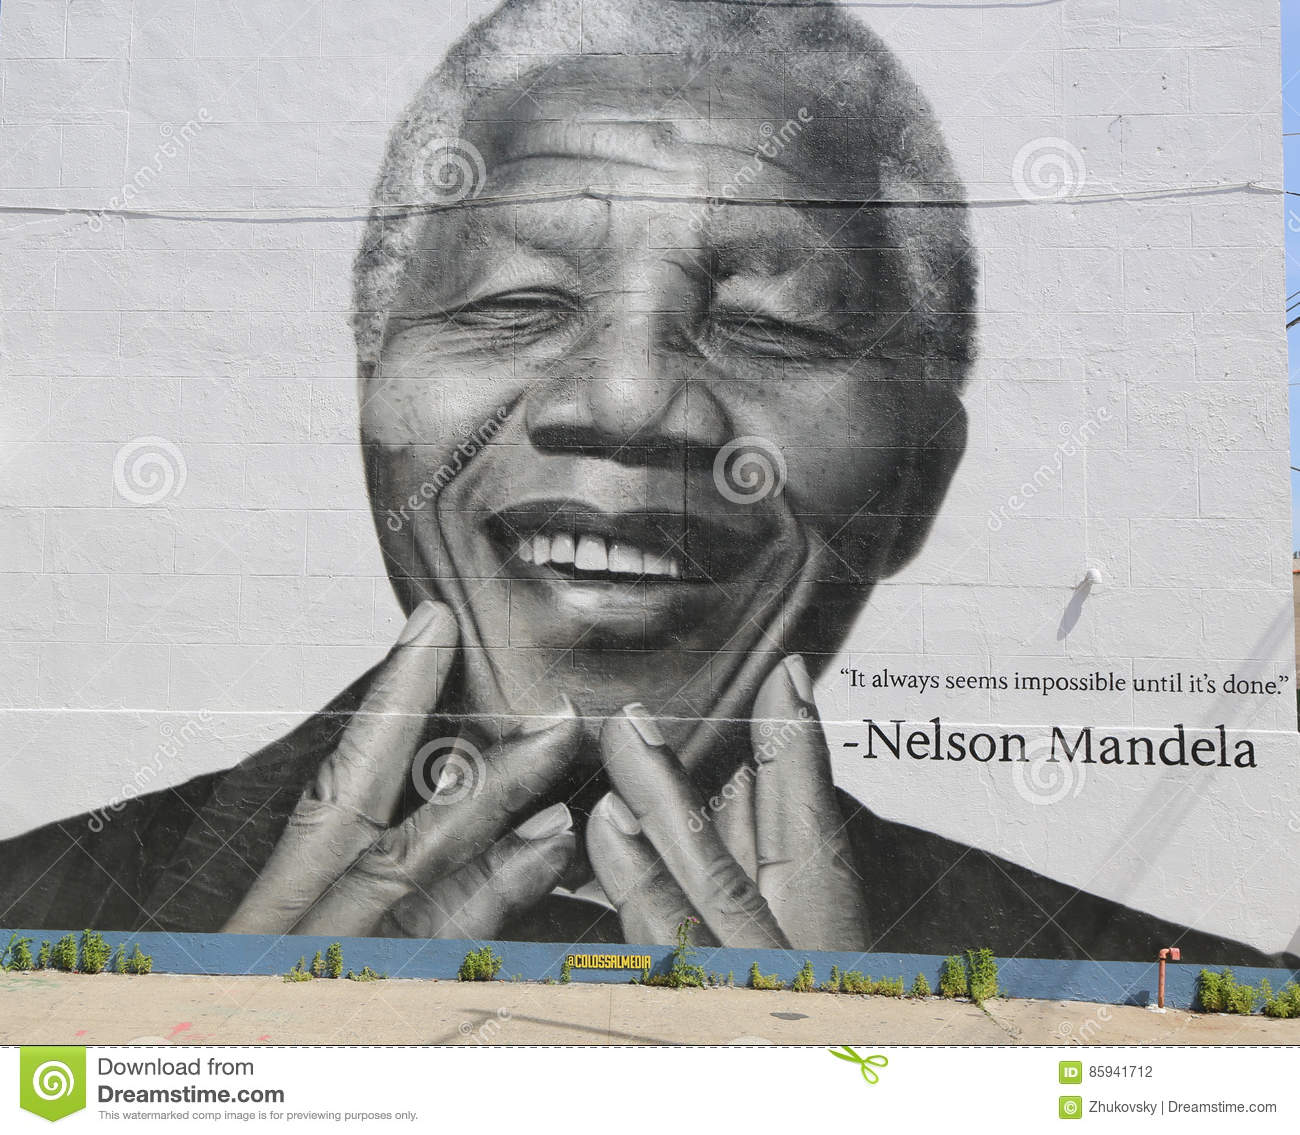 2 425 Nelson Mandela Photos Free Royalty Free Stock Photos From Dreamstime